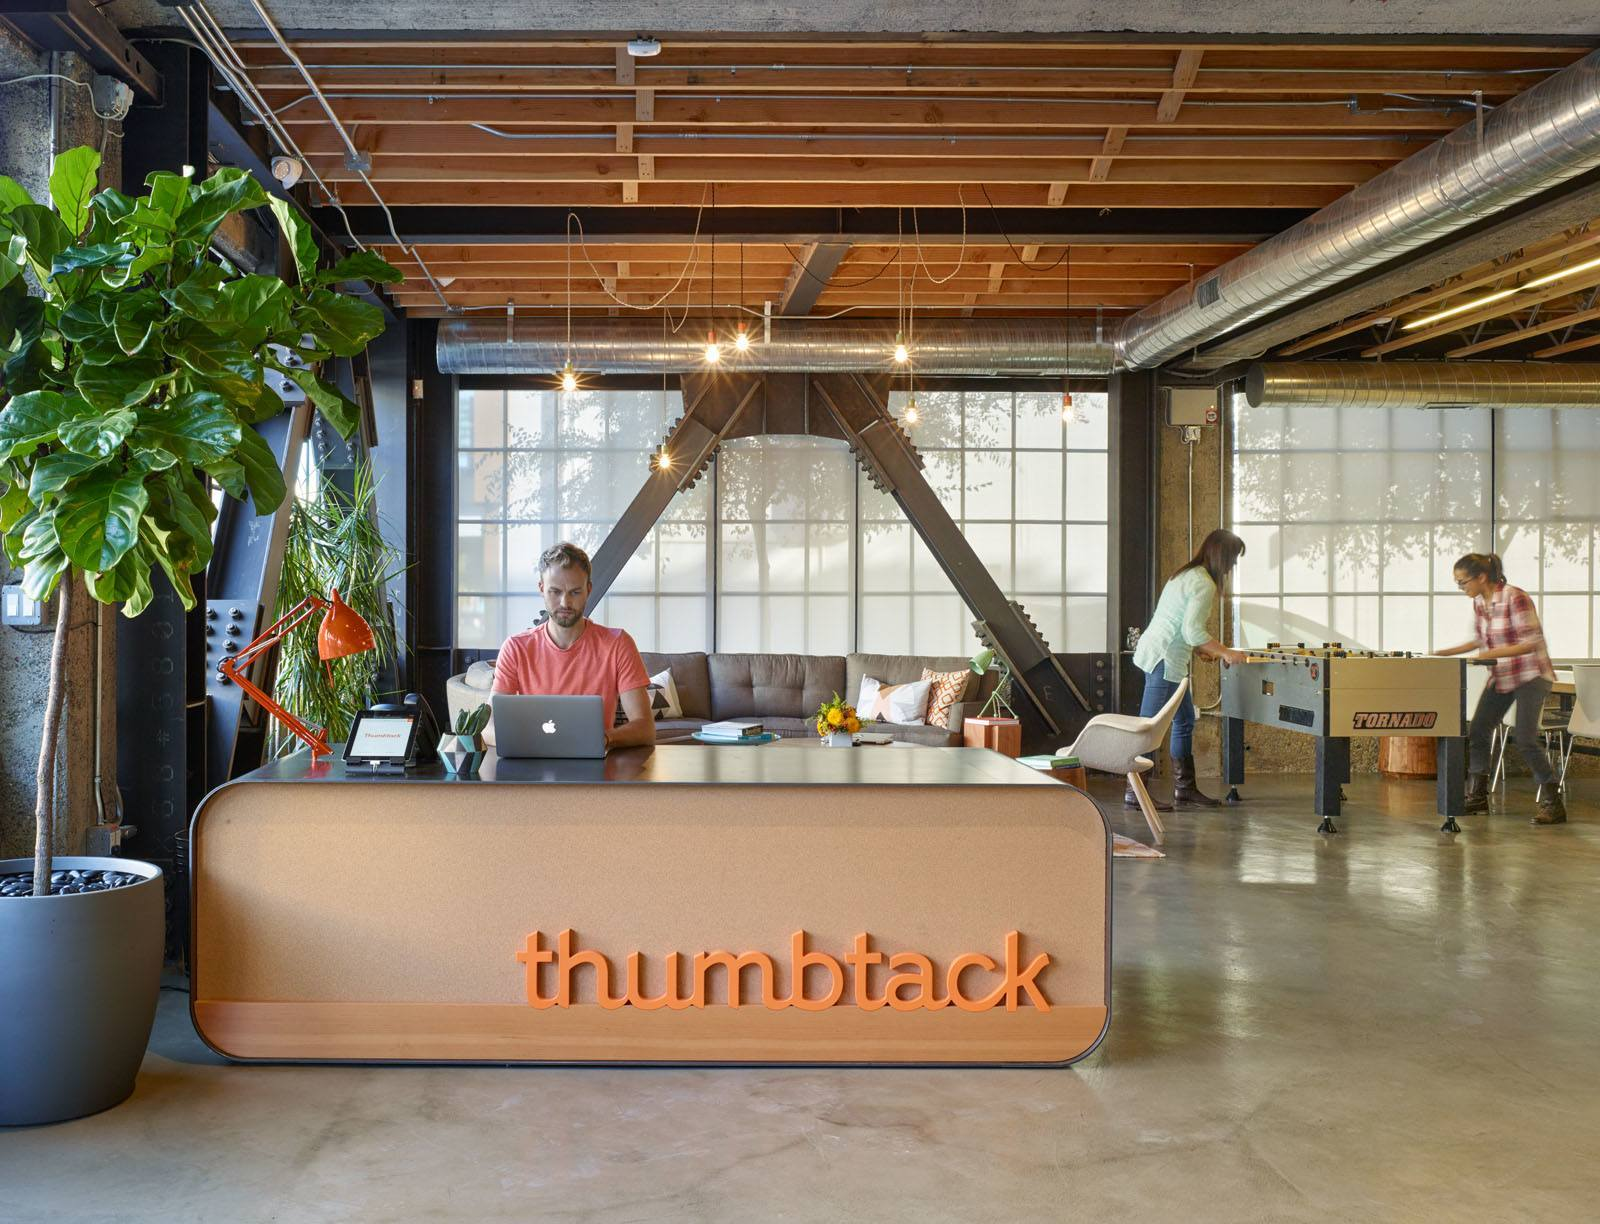 An Exclusive Look Inside Thumbtack's Cool San Francisco Headquarters